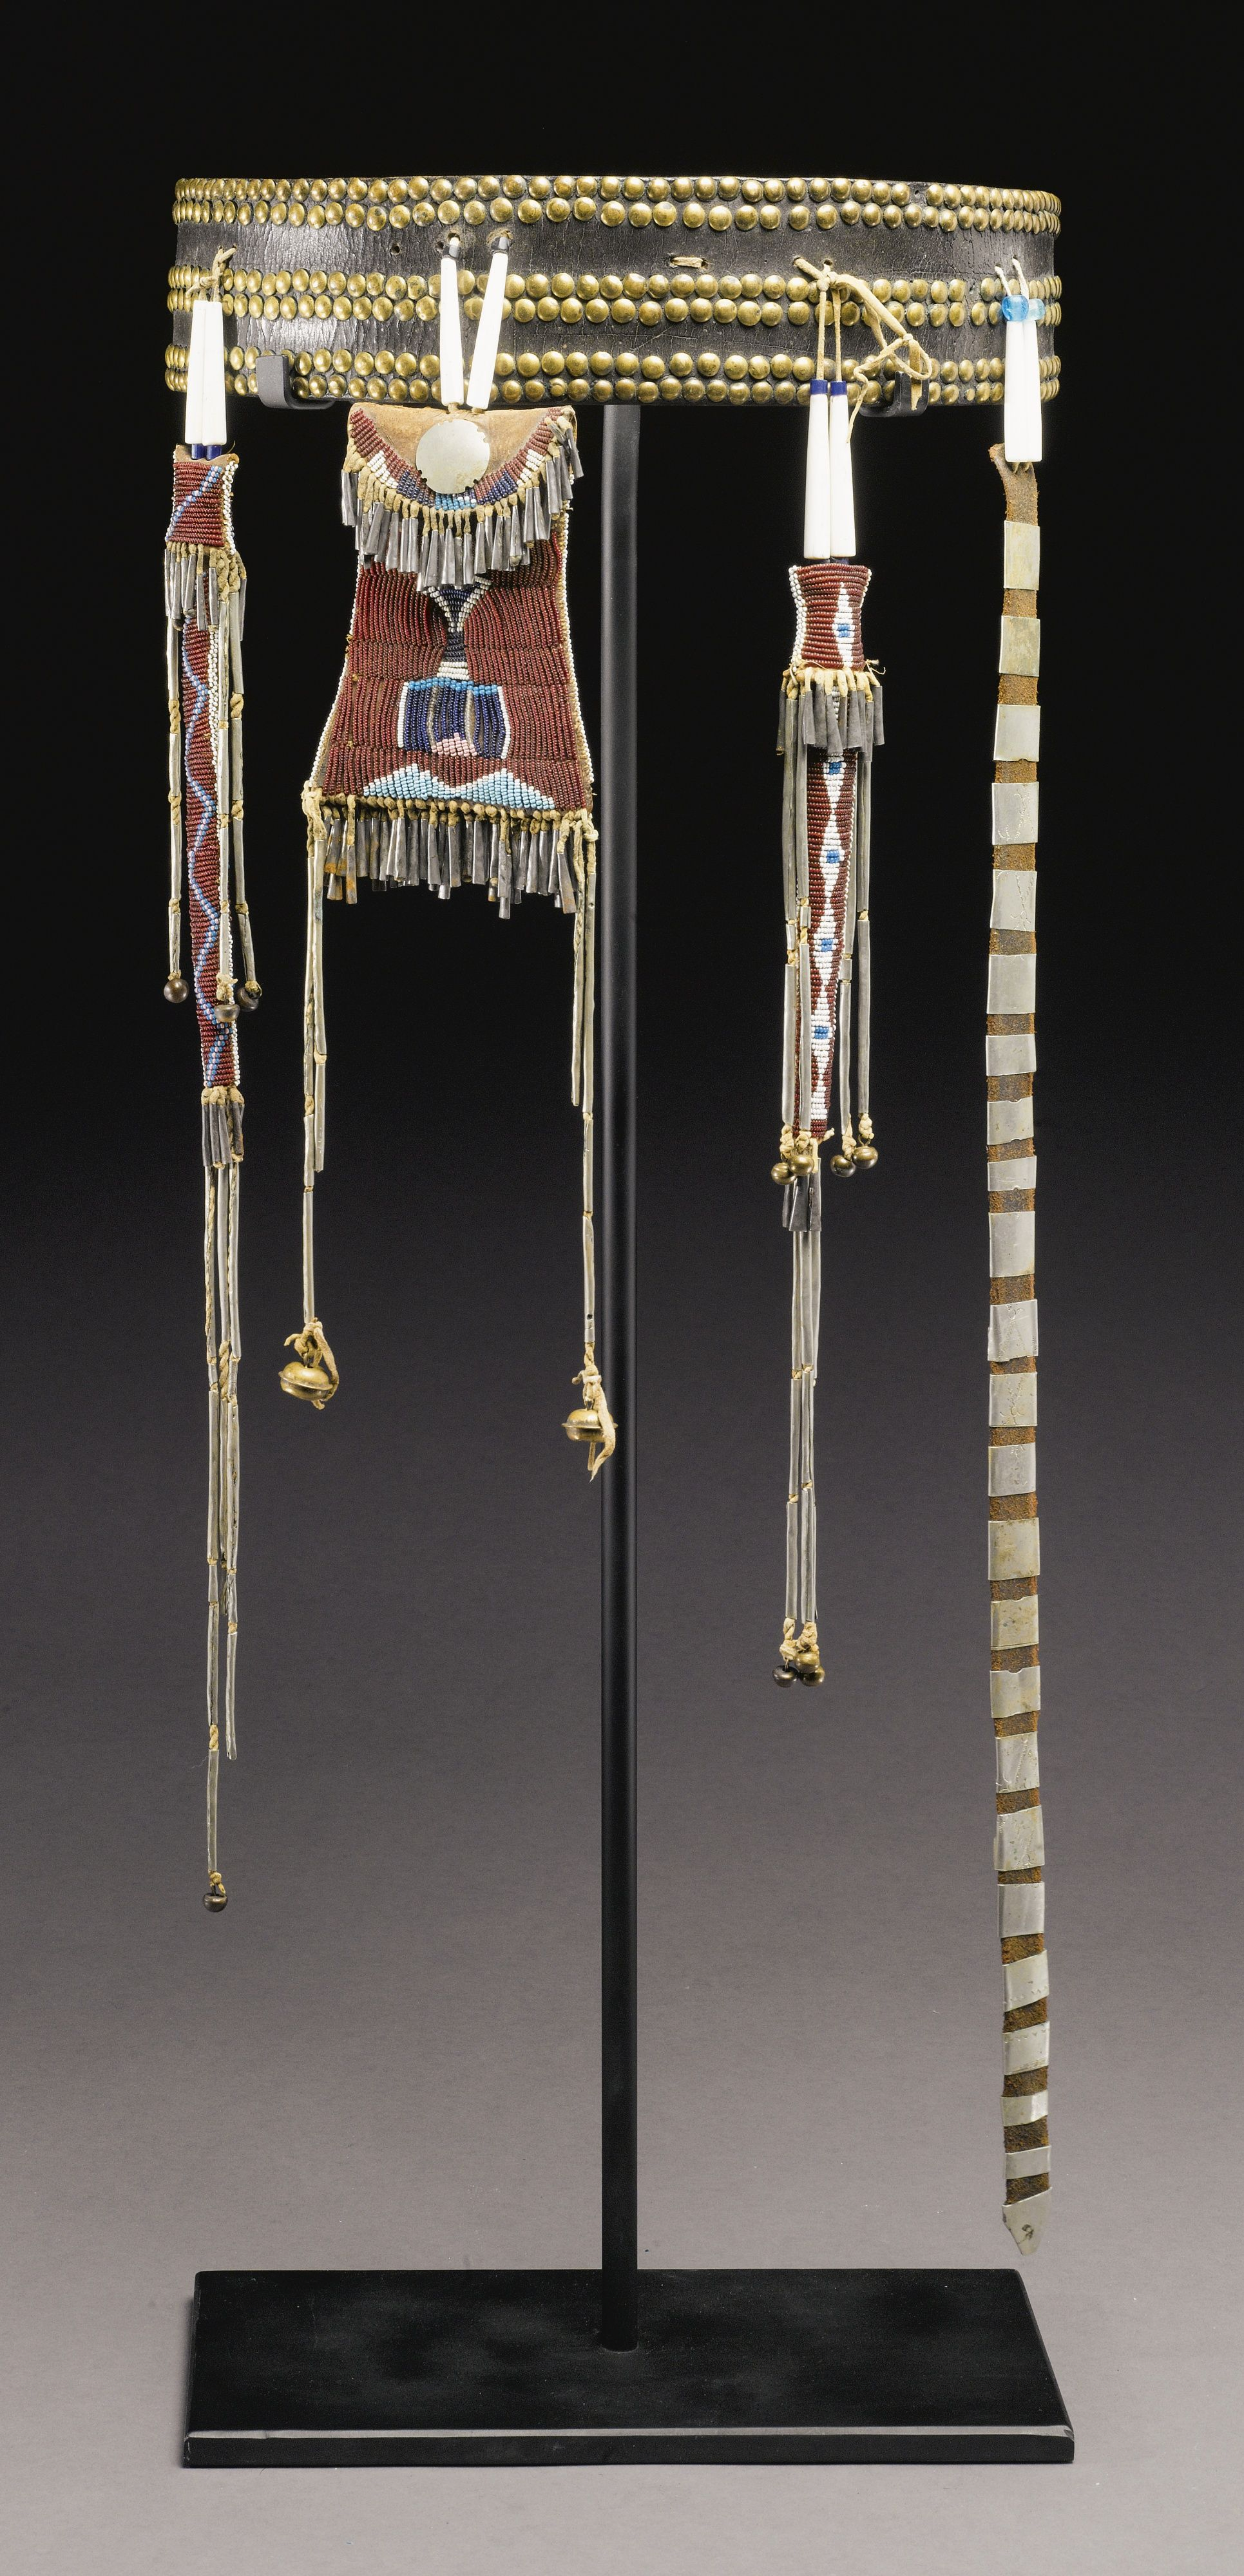 KIOWA WOMAN'S BELT AND BEADED HIDE ACCESSORIES comprising a commercially tanned hide belt, decorated with brass tacks, together with a strike-a-light with German silver button, and two awl cases with hawk bells, each stitched in typical colors against a maroon glass beadwork ground, with geometric motifs, trimmed with long cut hide pendants strung with tubular brass beads, also with a hide belt (fragment?), wrapped with silver slides, some finely incised with scrolling and linear details.